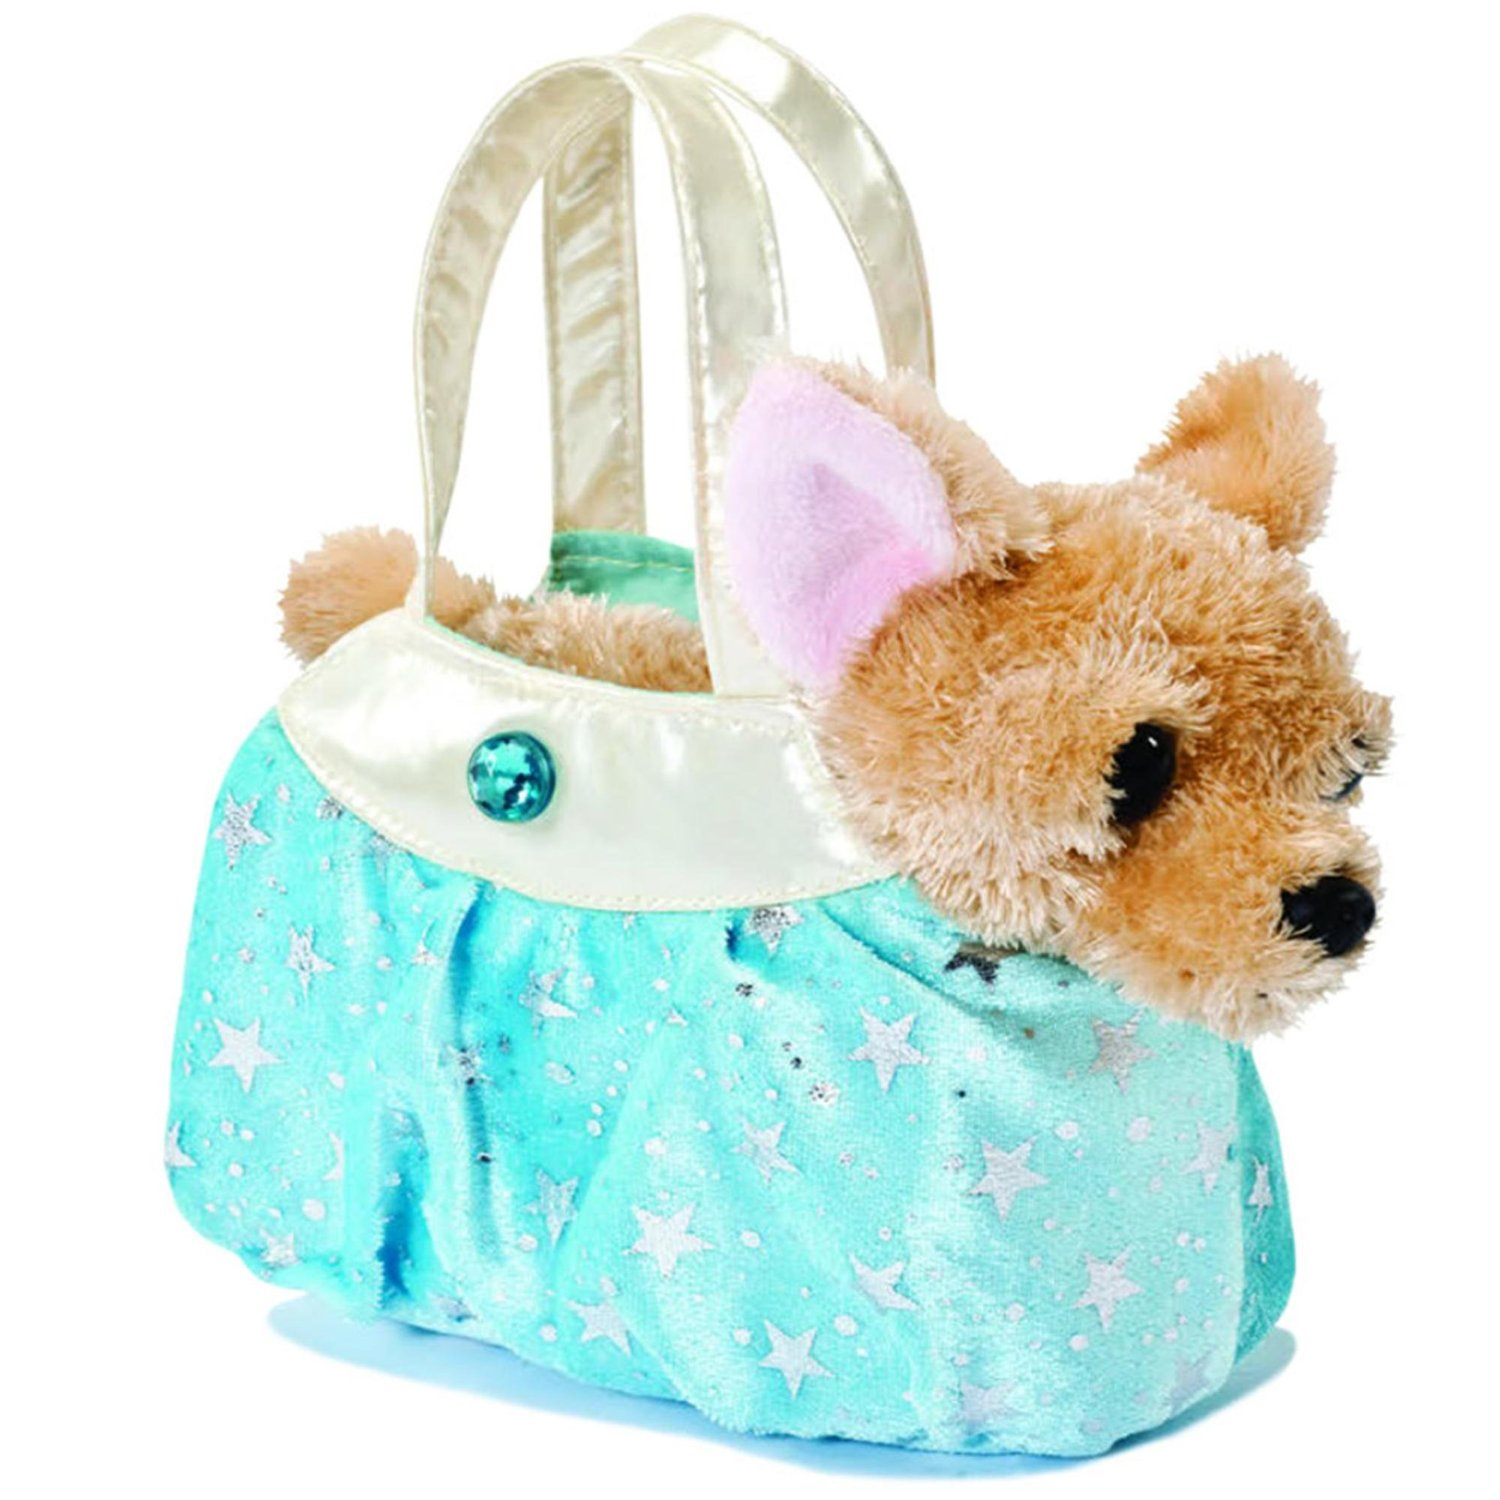 Fancy Pals - Perro Chihuahua Shimmery Ice Blue de peluche, 20 cm, color marrón y azul (Aurora World